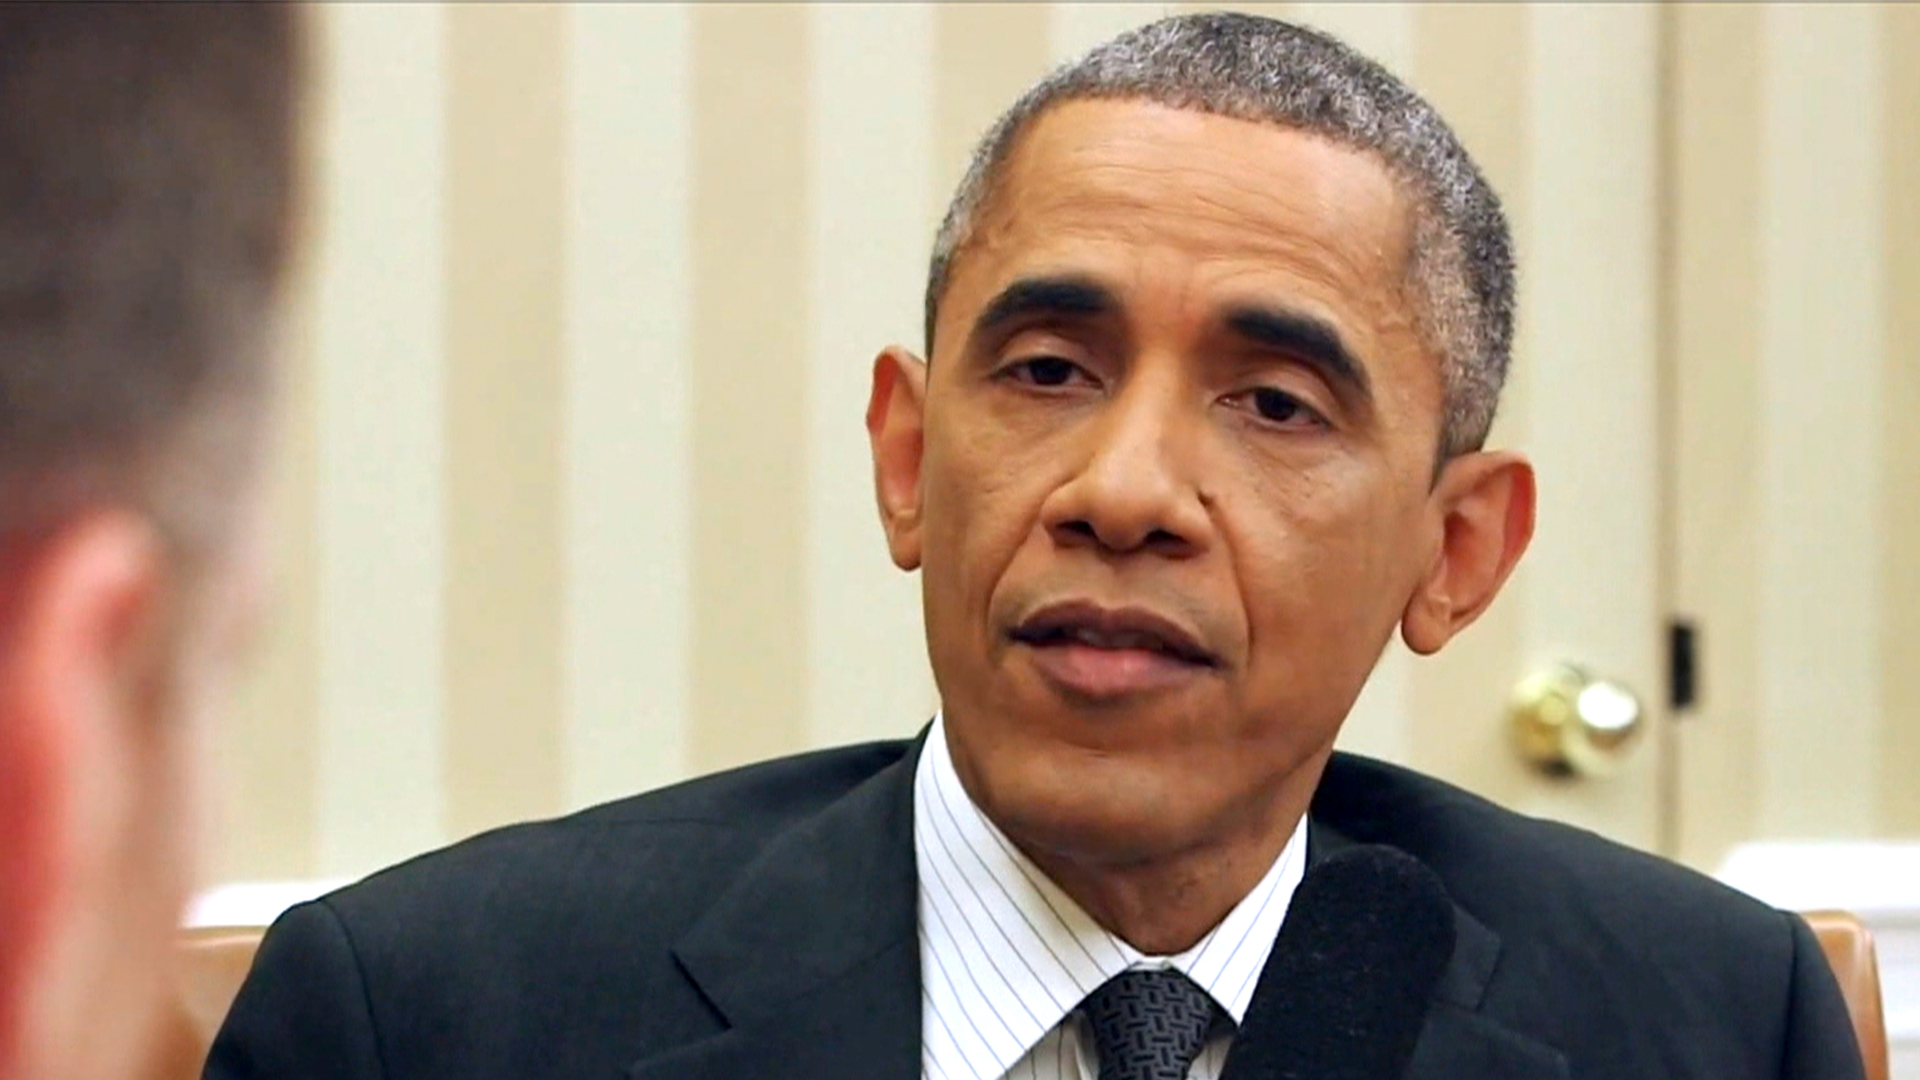 Obama Says He Disagrees with King Over Immigration - NBC News